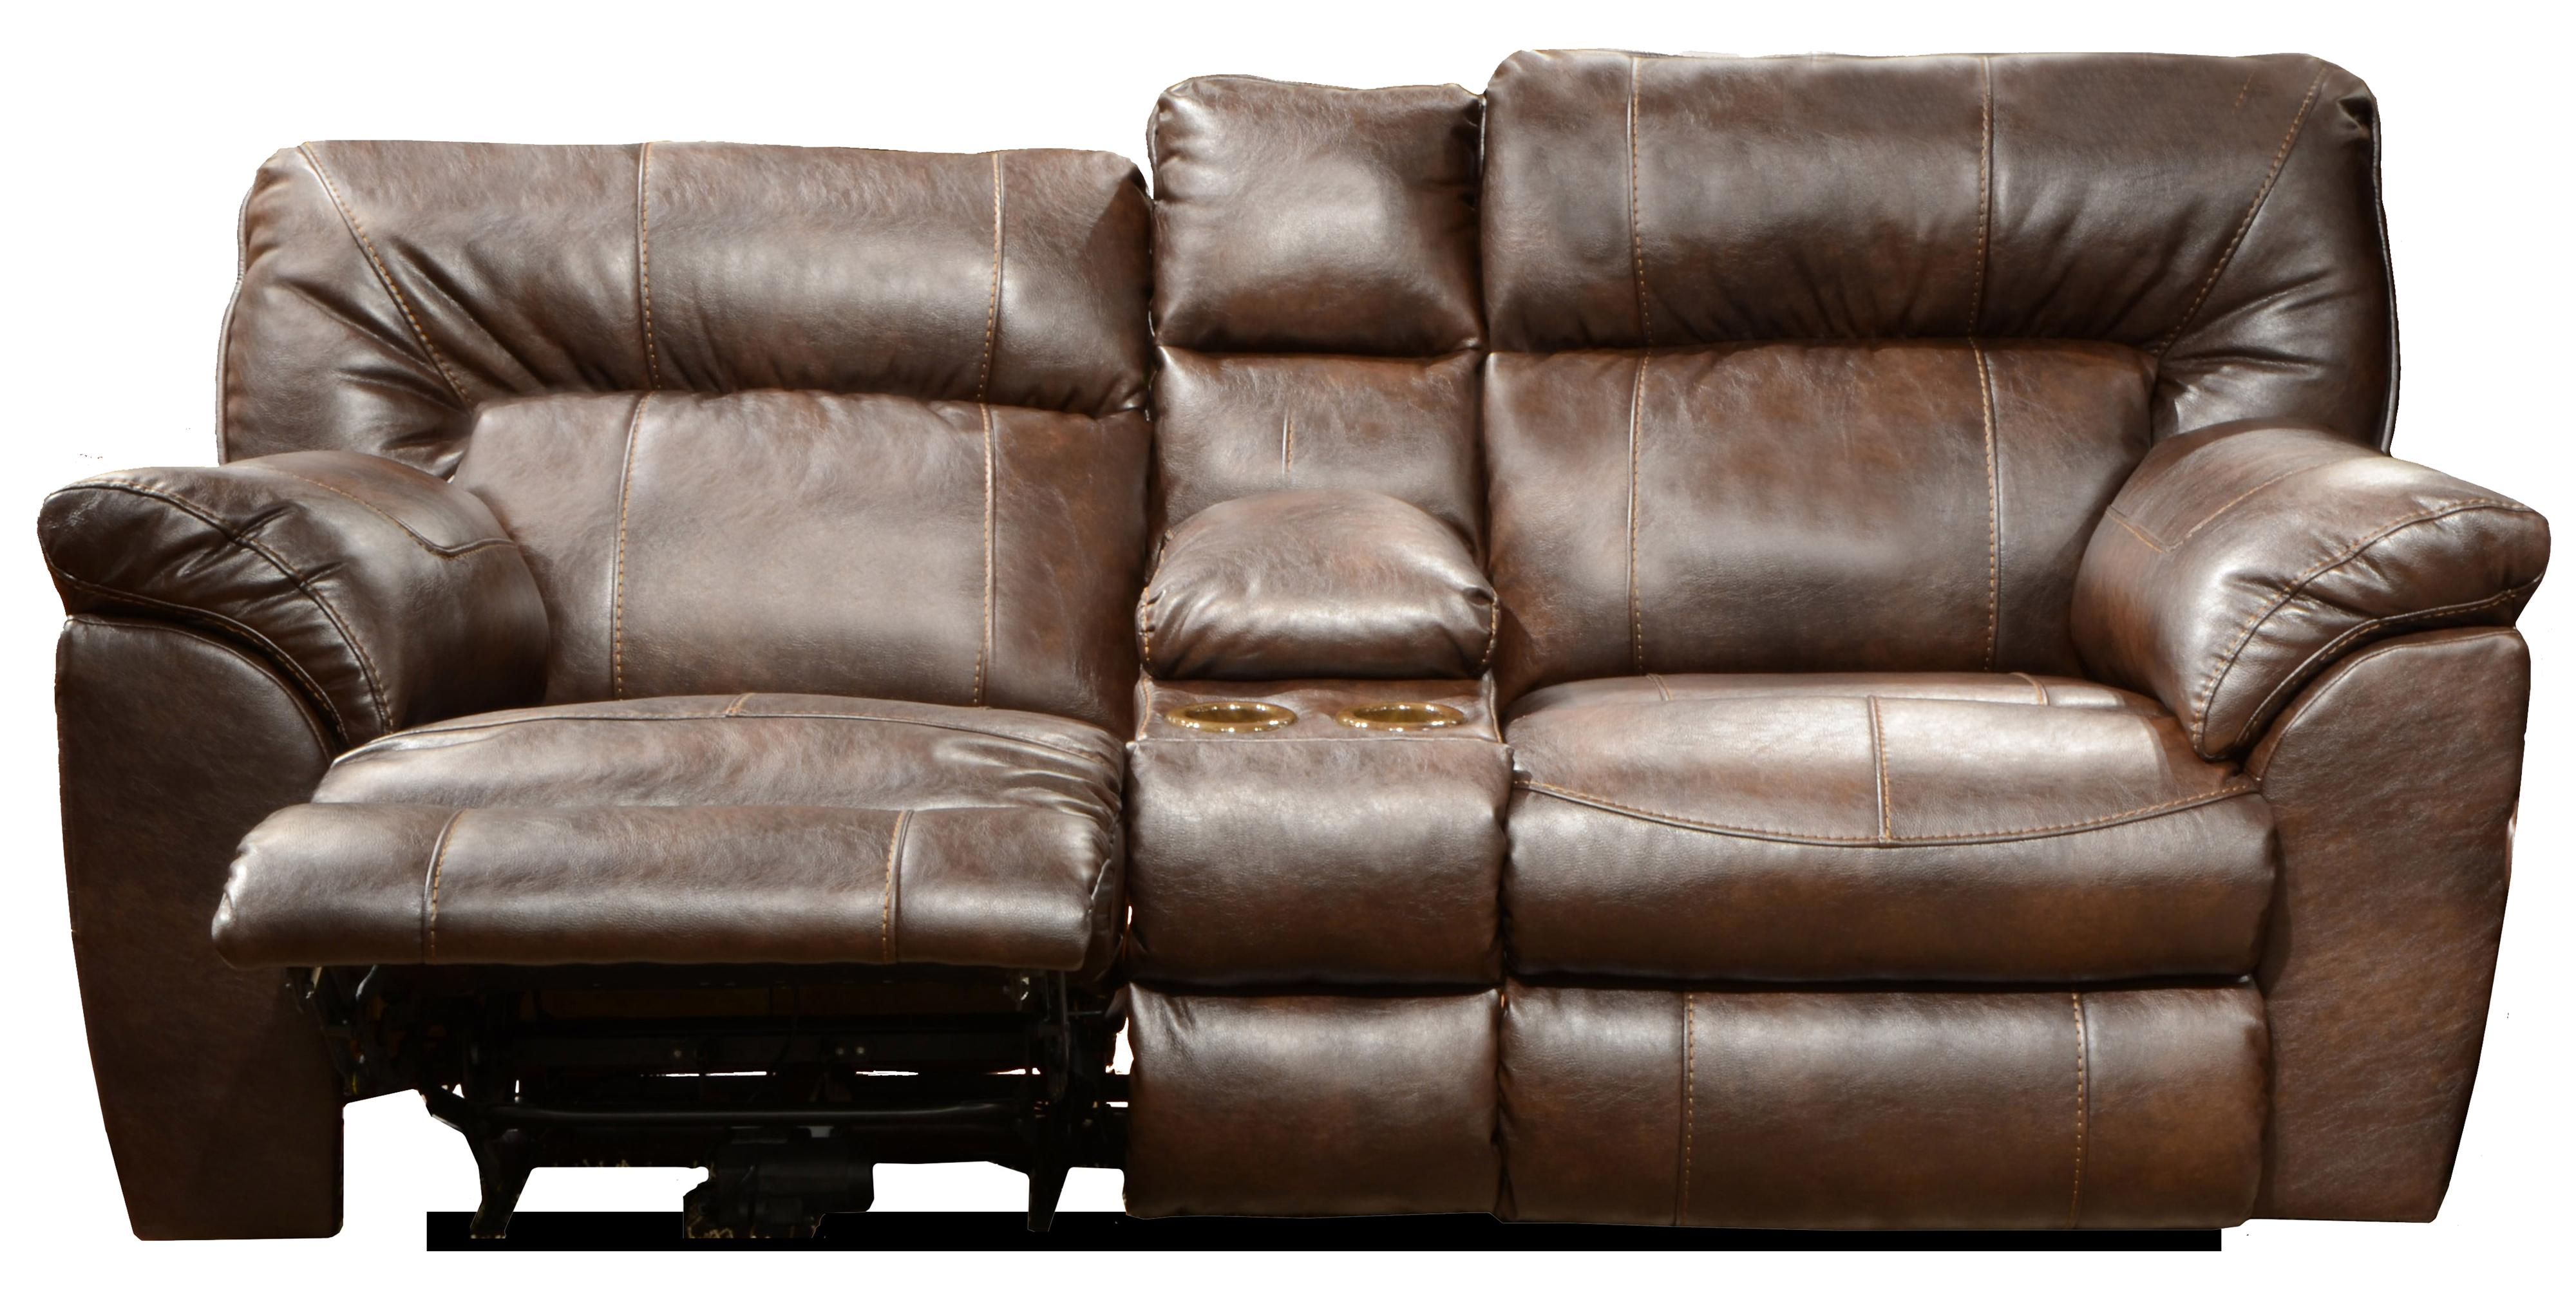 Catnapper Nolan Power Extra Wide Reclining Console Loveseat With Storage And Cup Holders: loveseat with cup holders